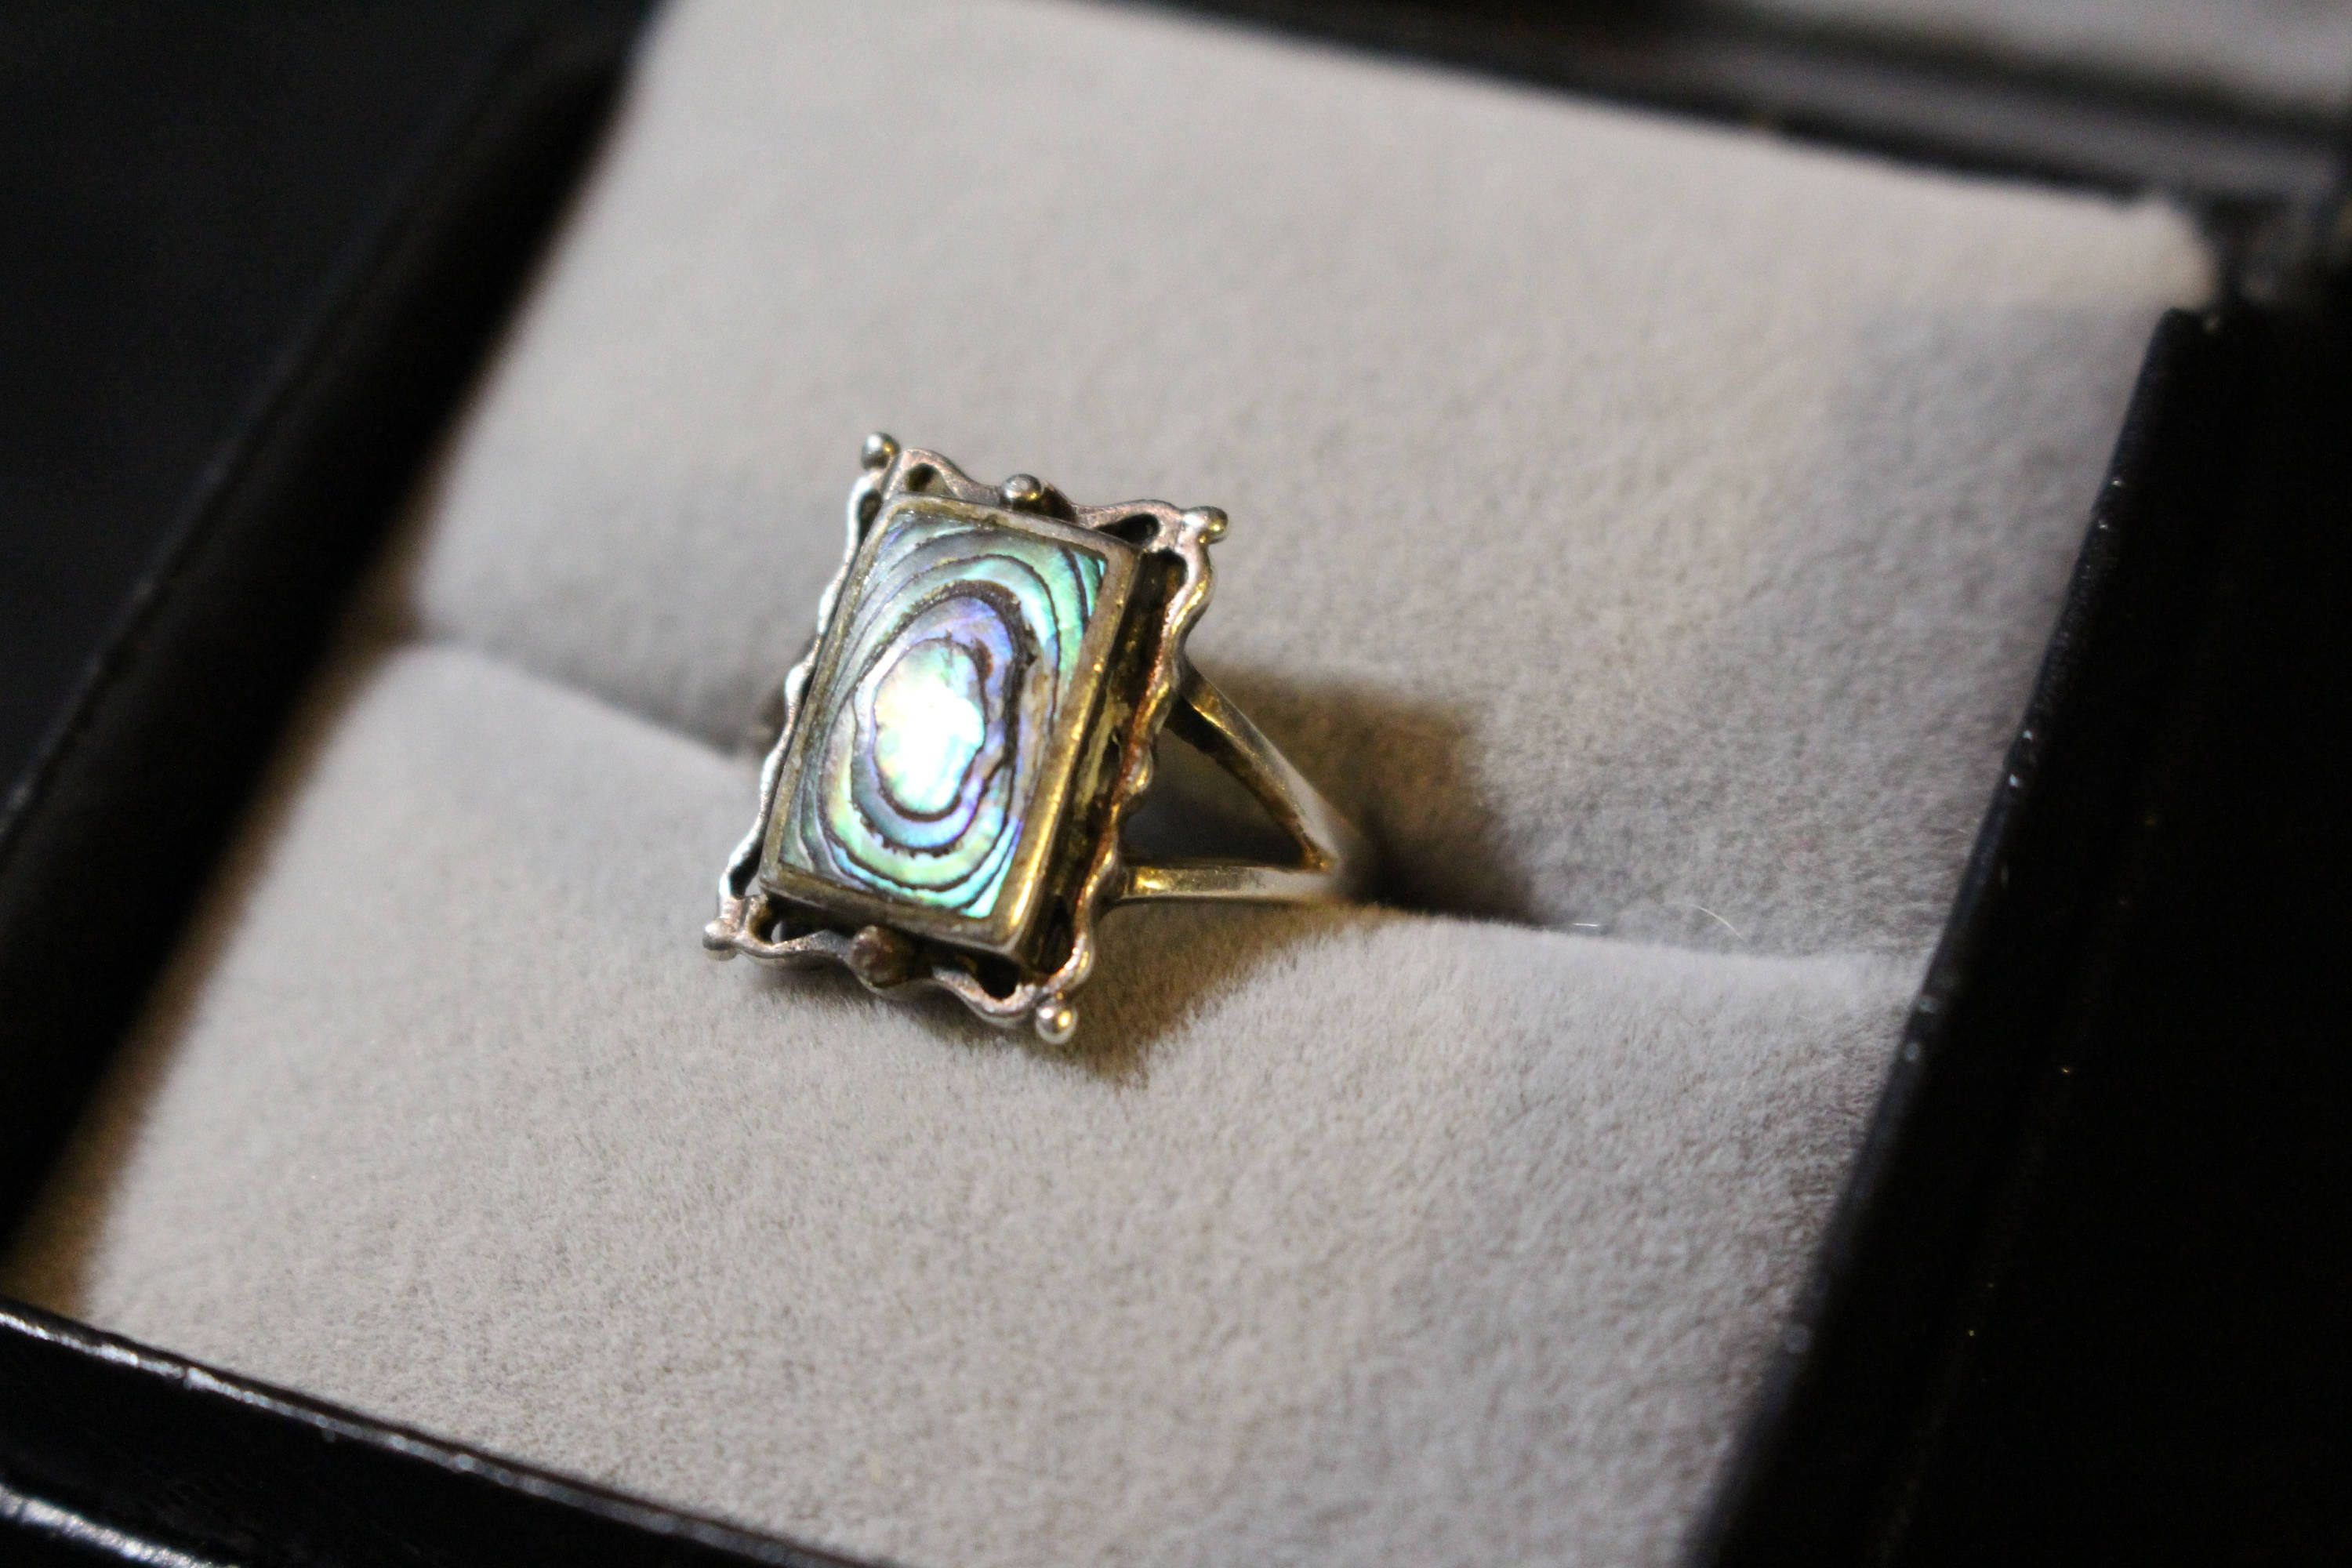 endearing style ring true aeravida sr details shaped products the aba stone shell vintage or heart abalone handcrafted a rings kung wedding this devotion turquoise from sterling artisan thailand features silver